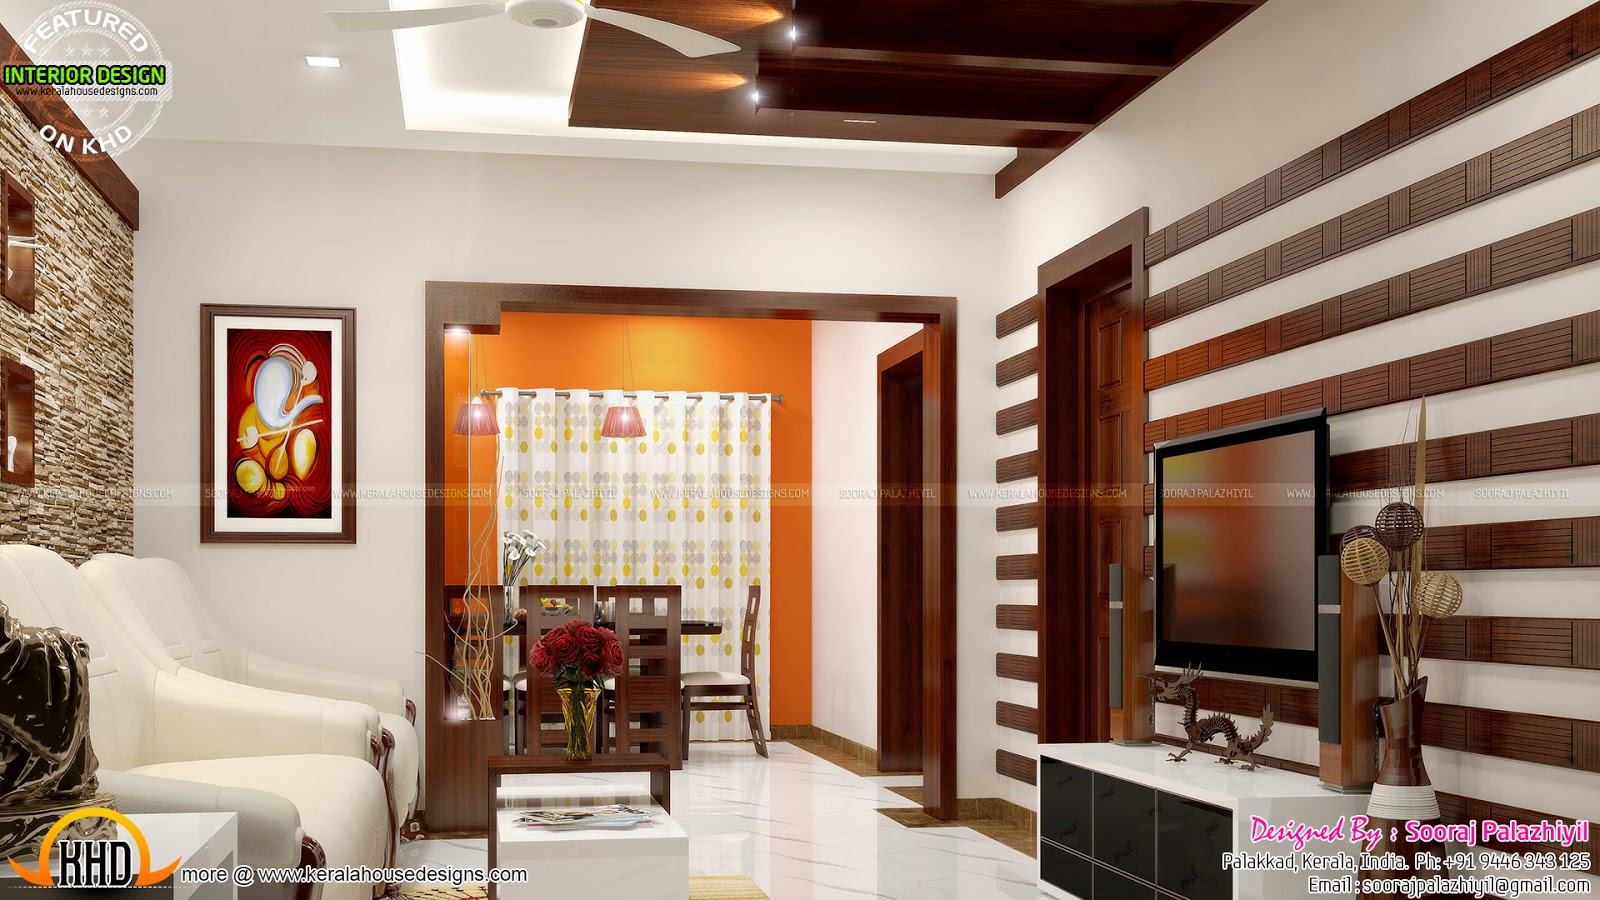 Bedroom Interior In Kerala Indian Home Brilliant 70 Living Room Design Style Inspiration